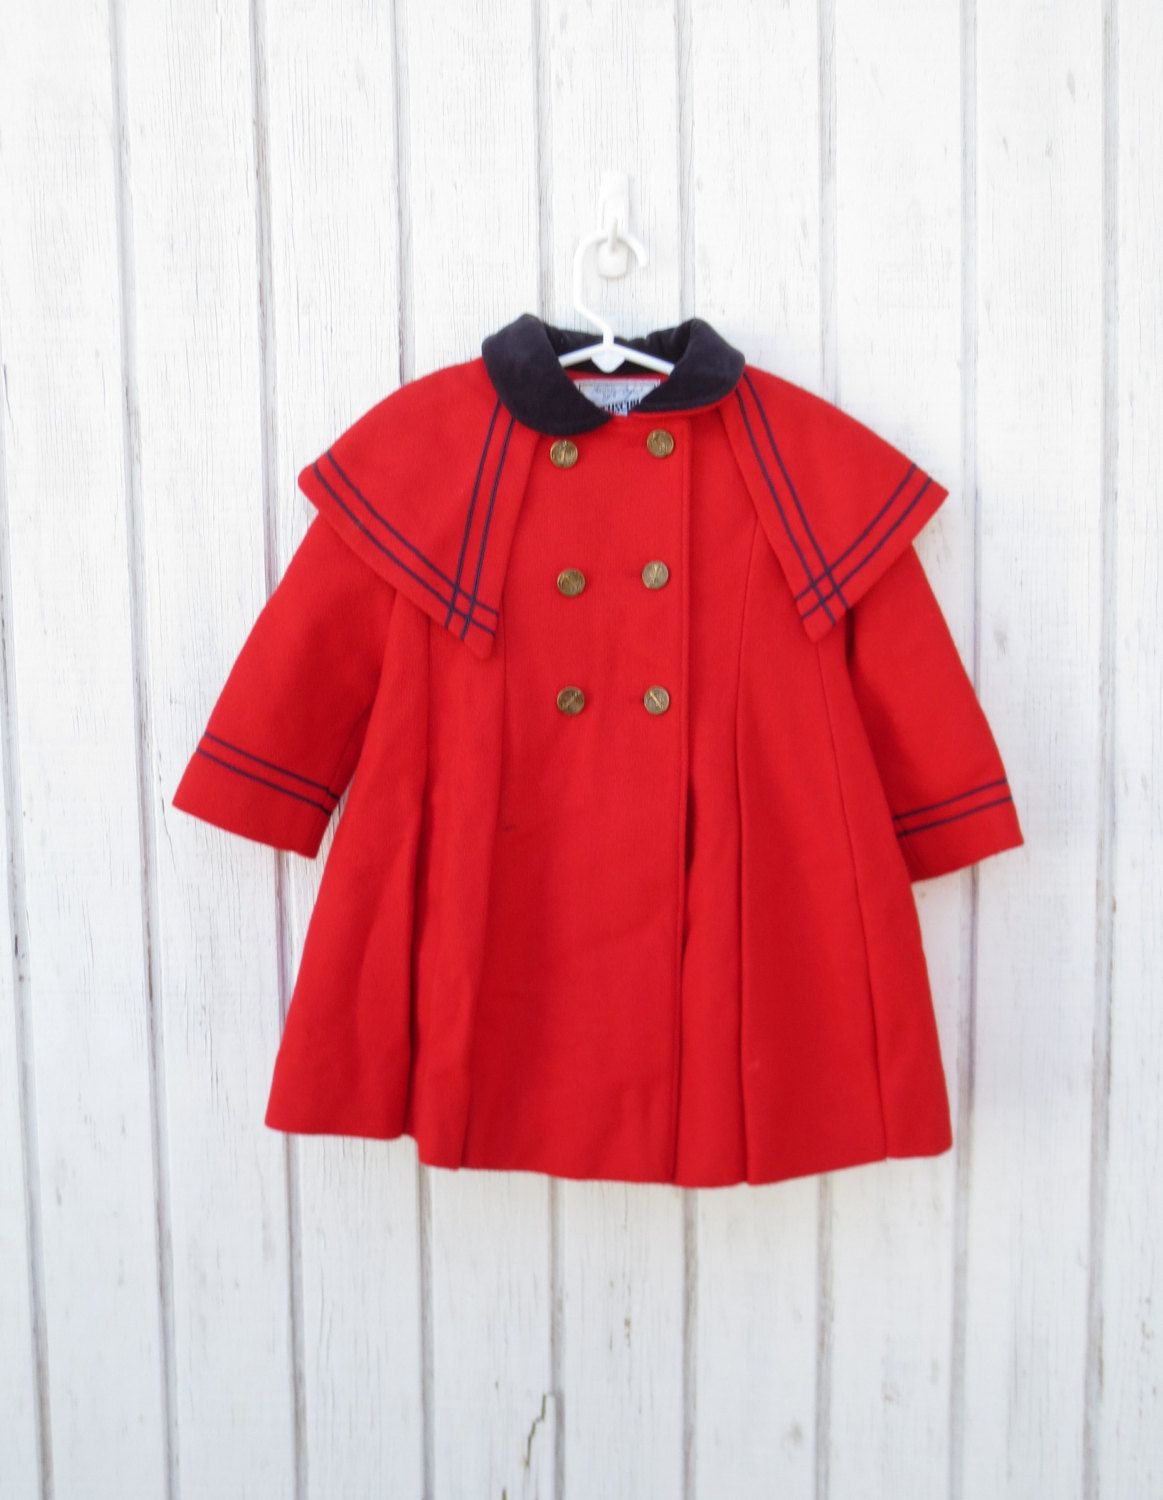 5fc24d6ff9db Vintage Children s Clothes 60s Girl s Jacket Red Coat Madeline ...